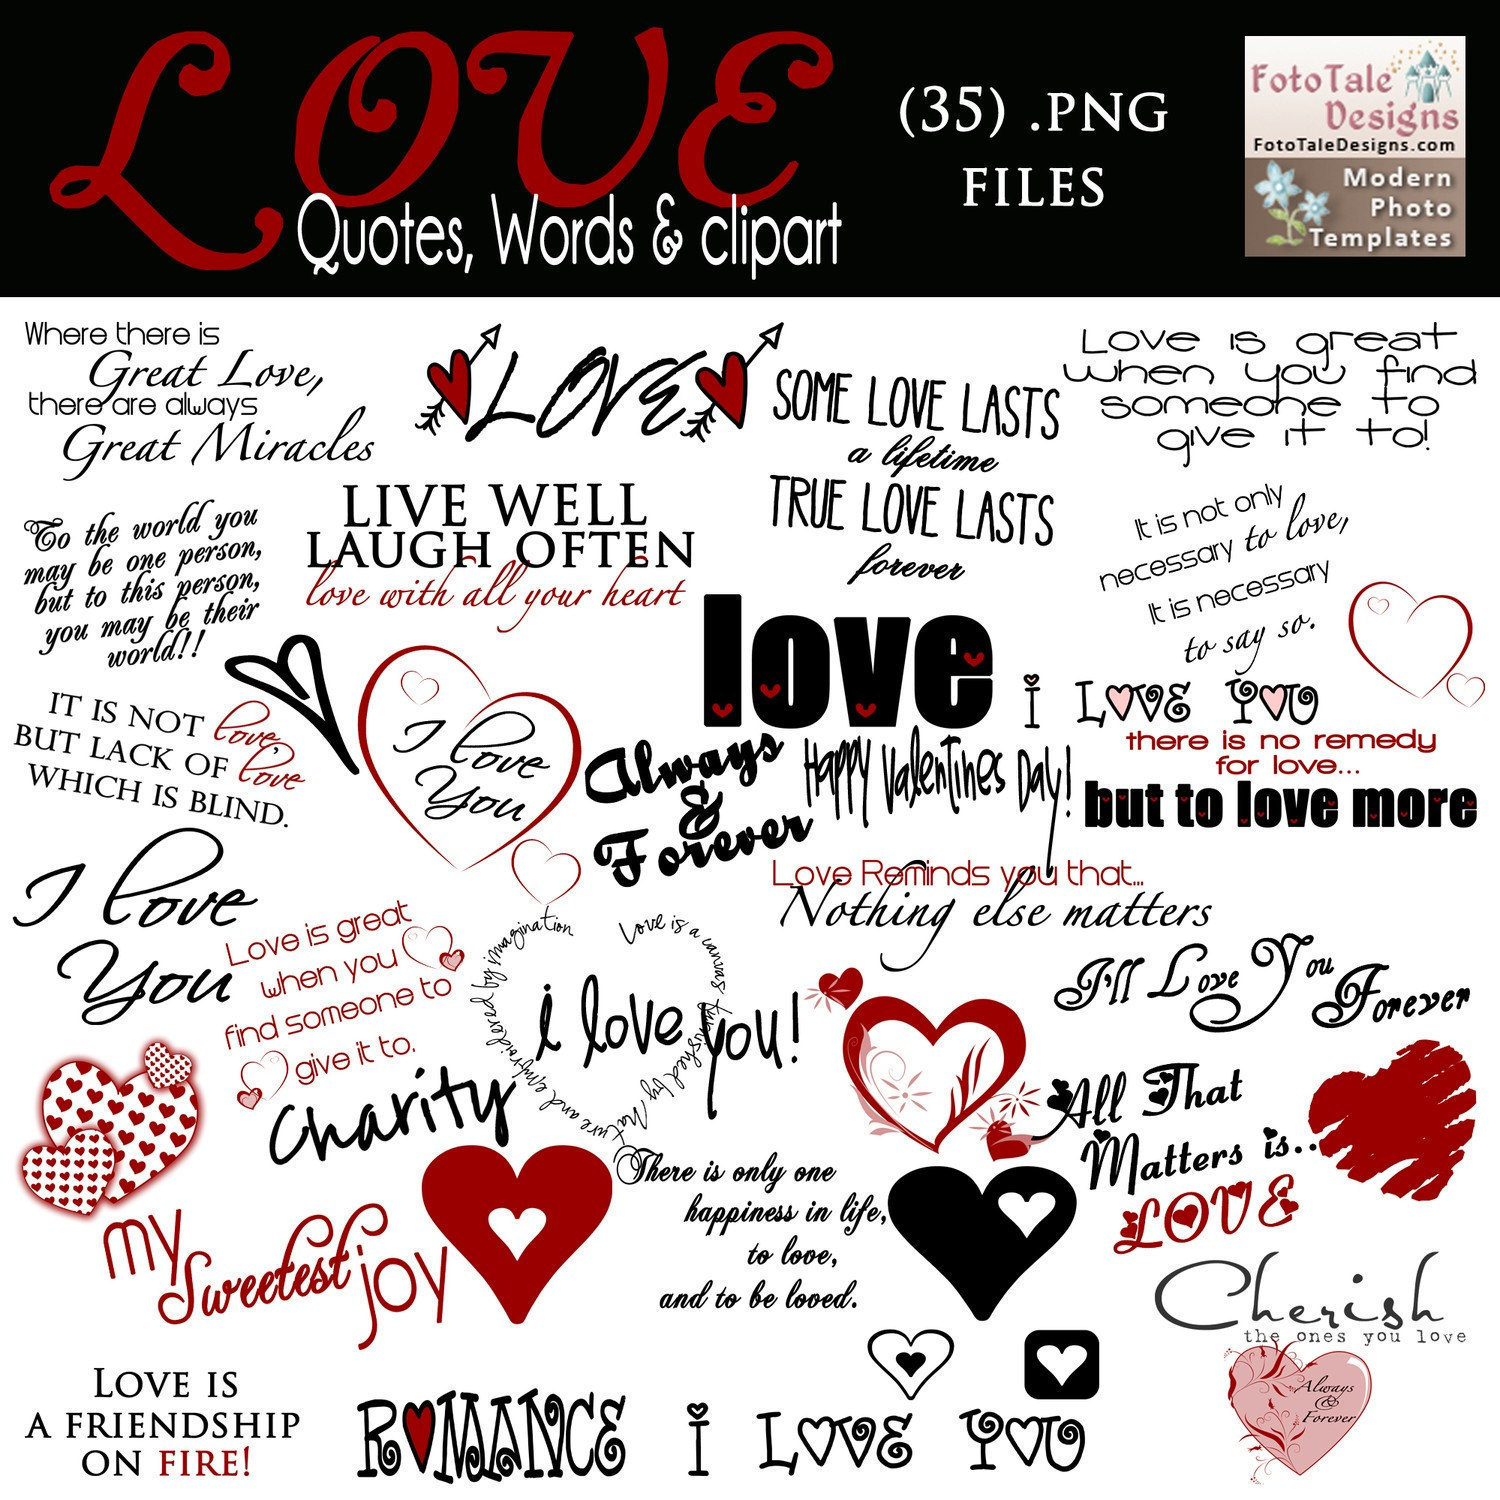 Love Quotes For Him Scrapbook : Scrapbook - Free Printable Word Art, Scrapbook Love Quotes and Sayings ...